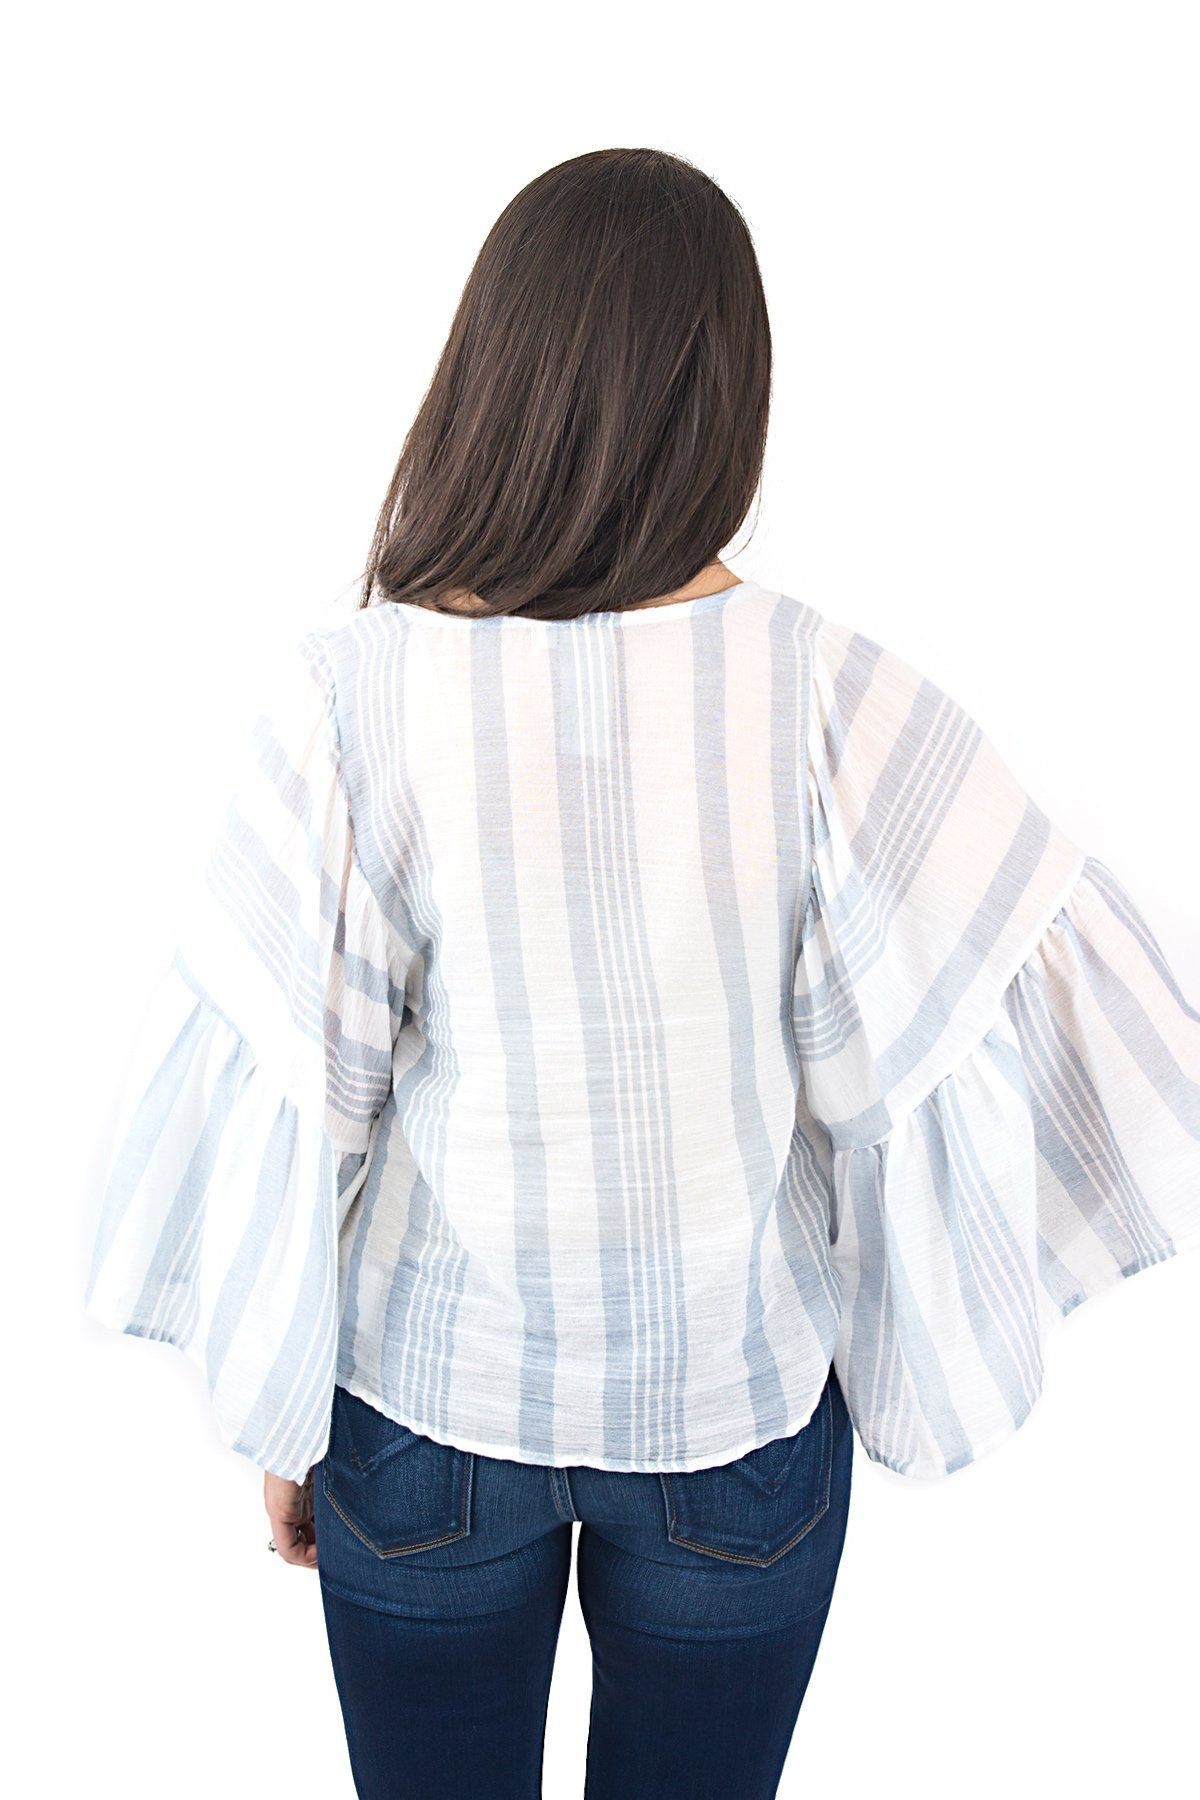 f0b86ffade This breezy striped top features oversized statement sleeves... so. much.  fun